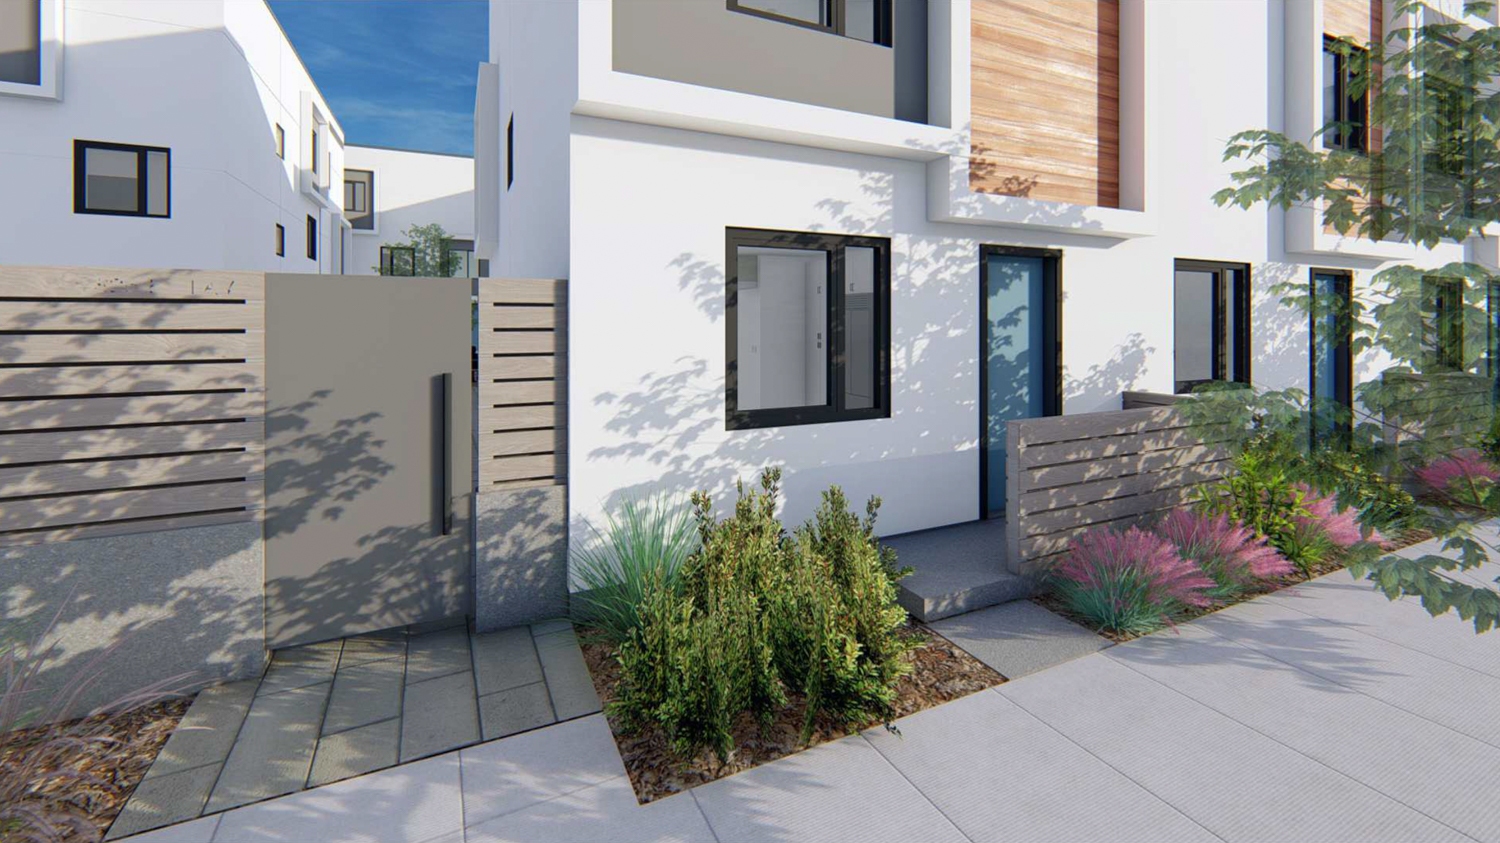 825 6th Avenue townhouse entrance, rendering by Baran Studio Architecture